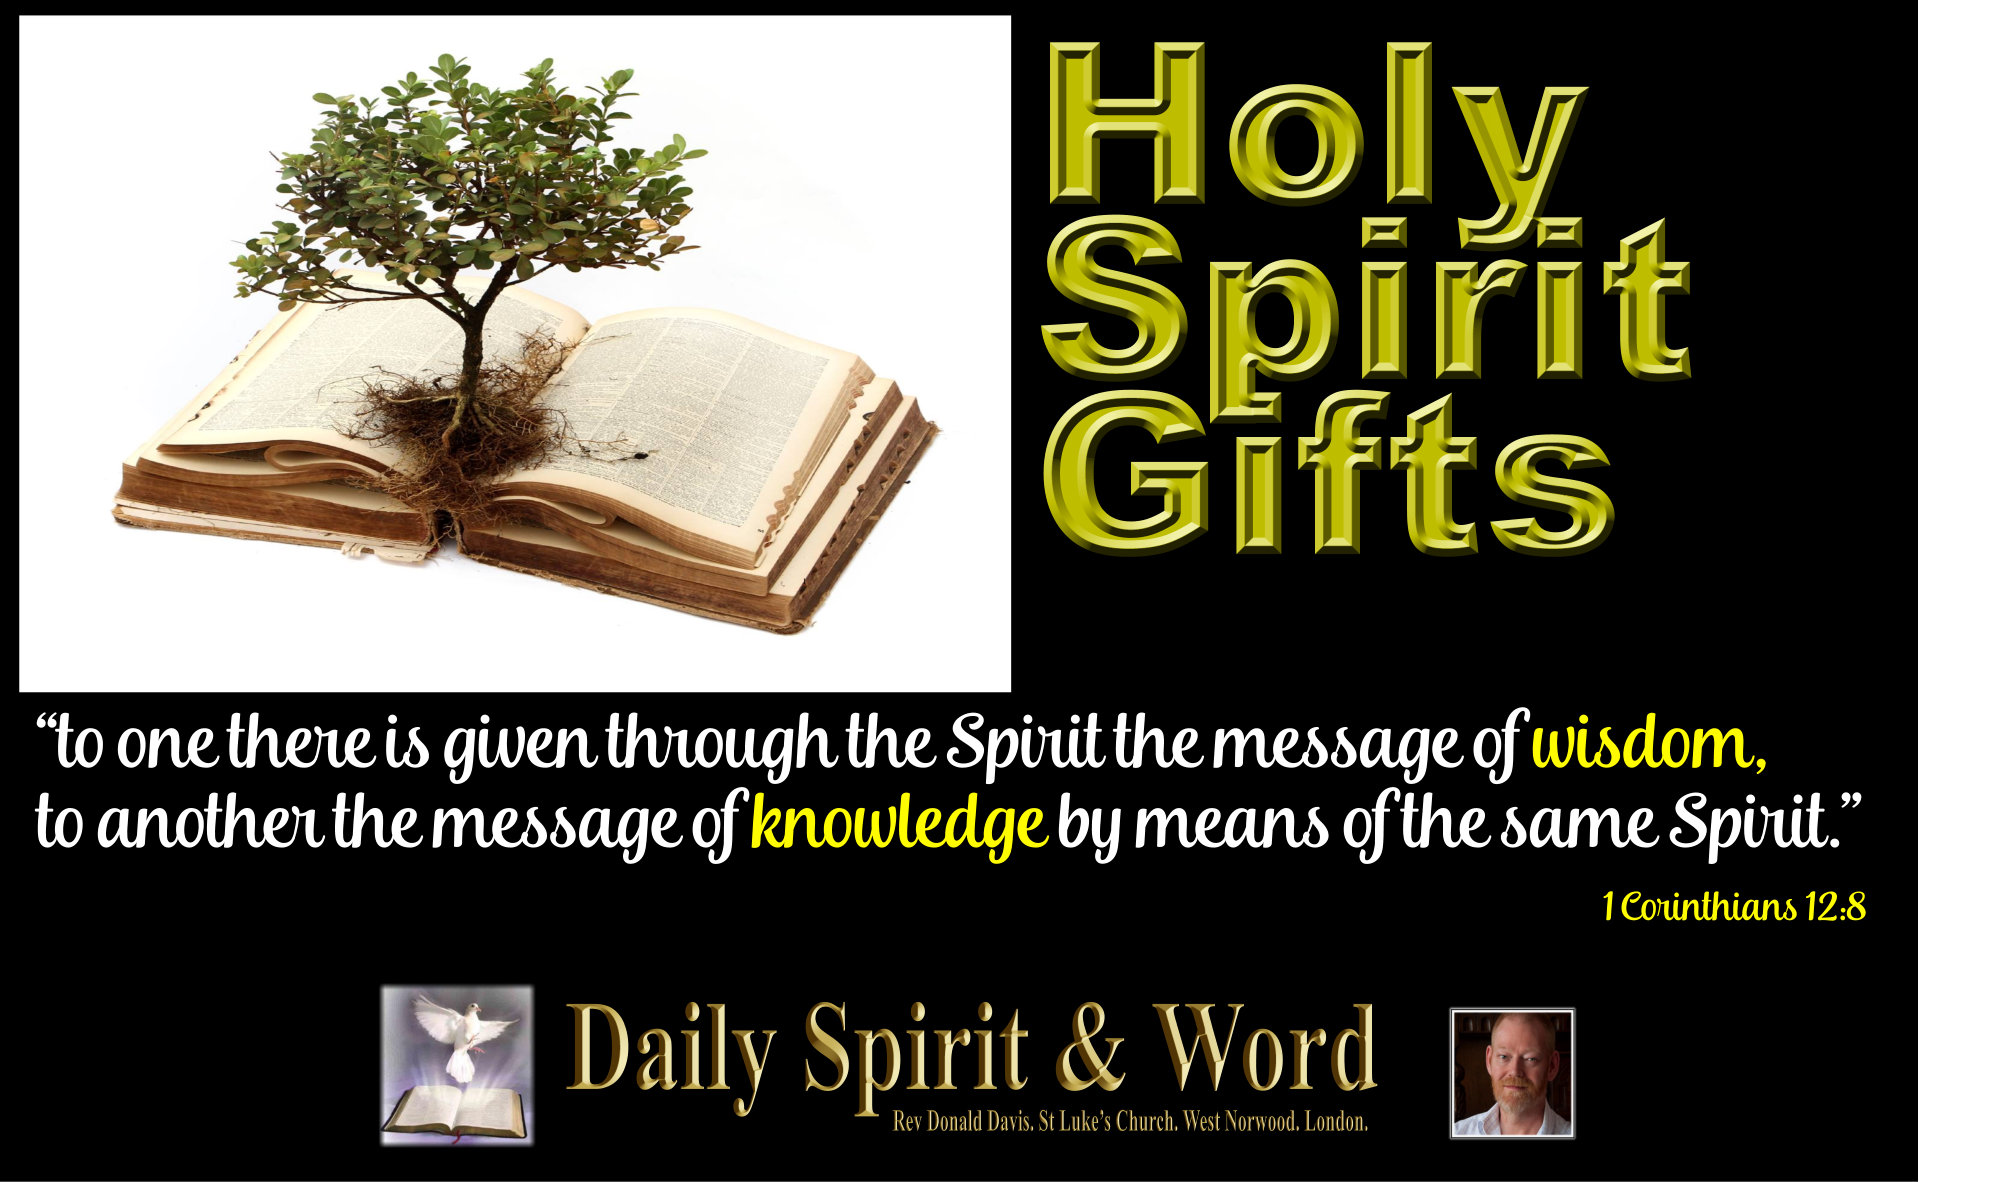 Daily Spirit & Word: 546: The Gifts of Wisdom and Knowledge.